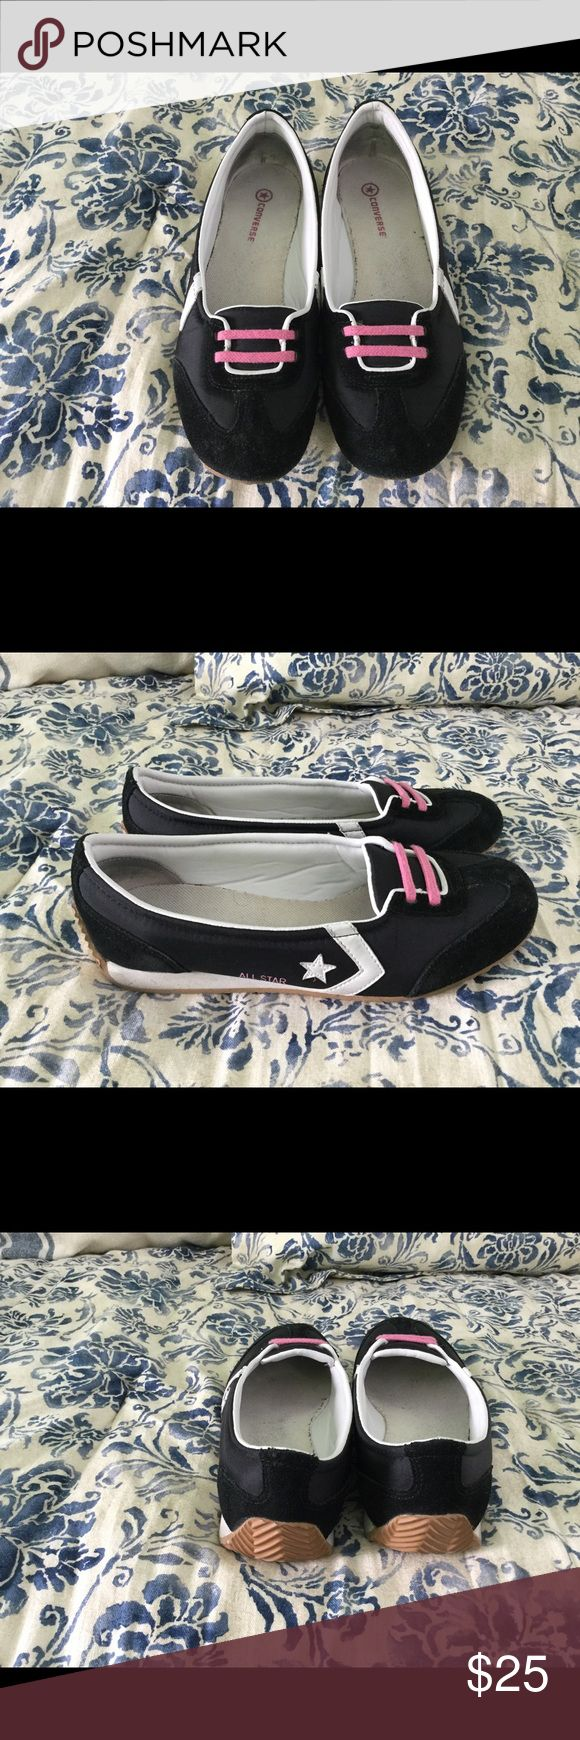 💯 Converse Shoes Authentic Converse Star FIICE Queen slip on. Black with pink accents. Upper is textile material with man made sole. Size 10 Converse Shoes Flats & Loafers